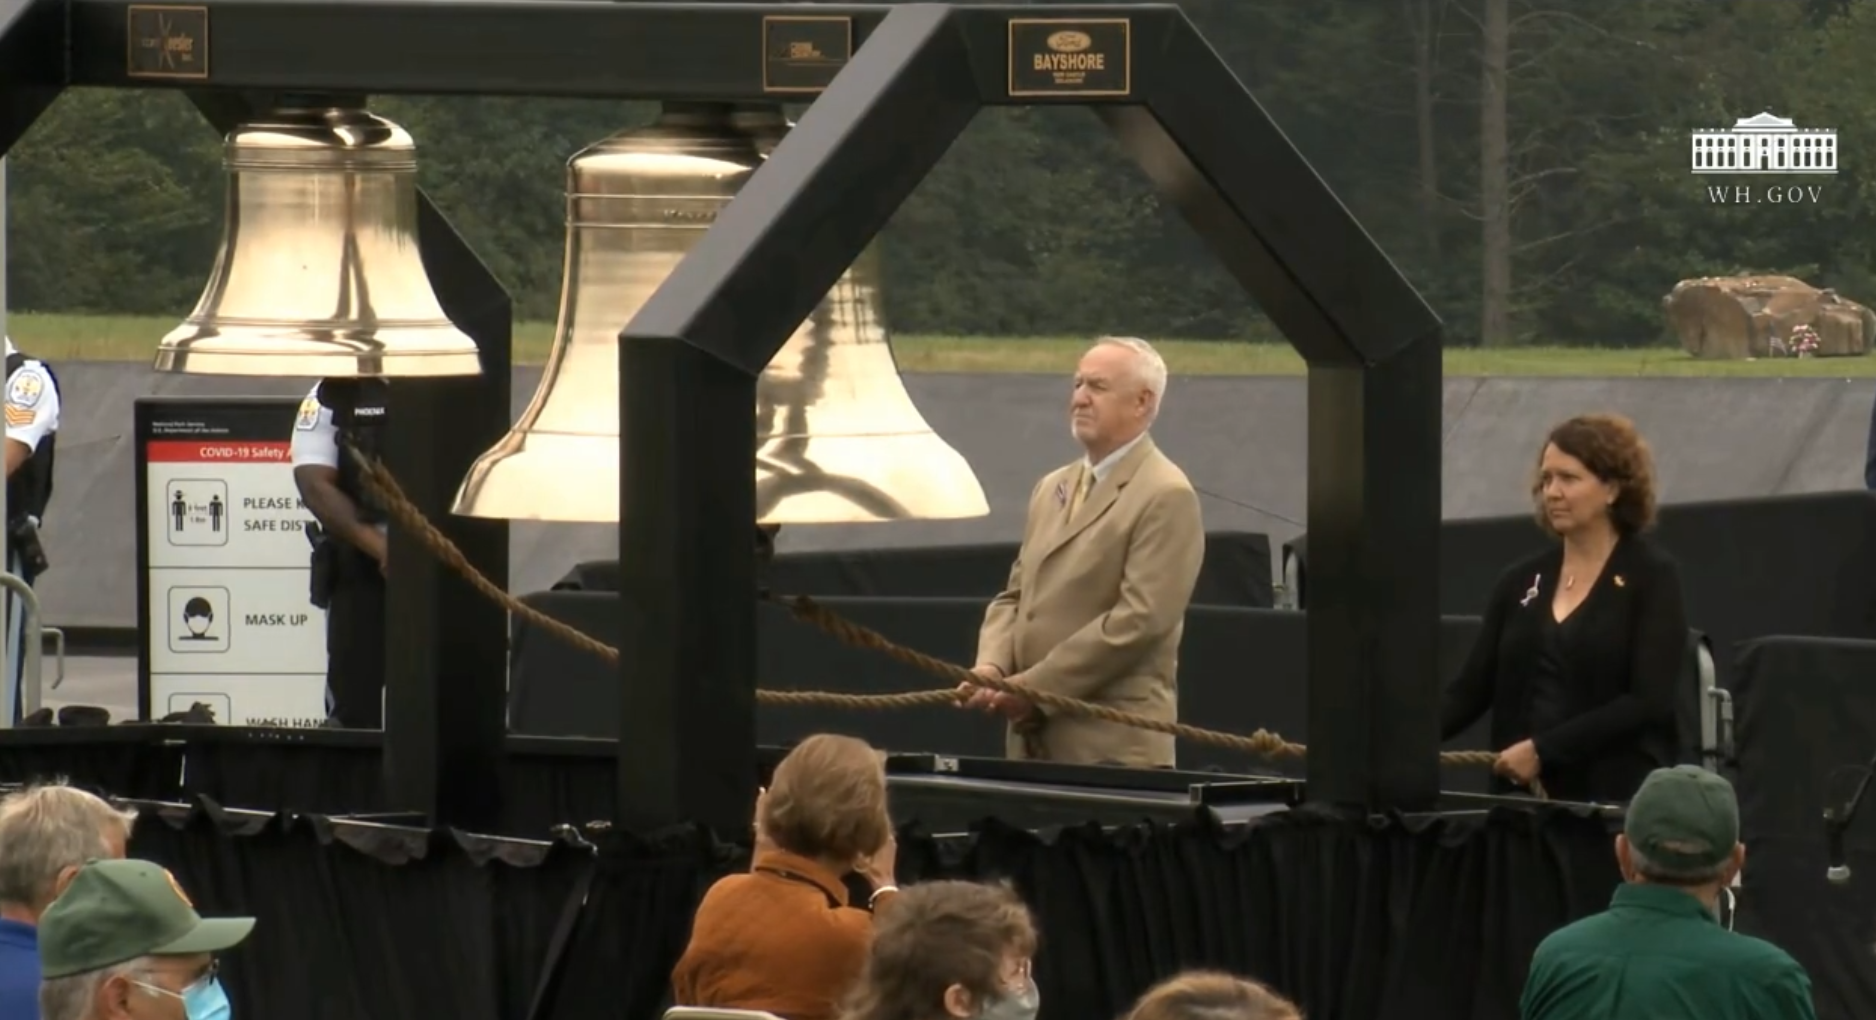 In this image taken from online video, a bell is tolled for victims of the Sept. 11, 2001, terrorist attacks during ceremonies in Shanksville, Pa., on Friday, Sept. 11, 2020. (Source: WhiteHouse.gov)